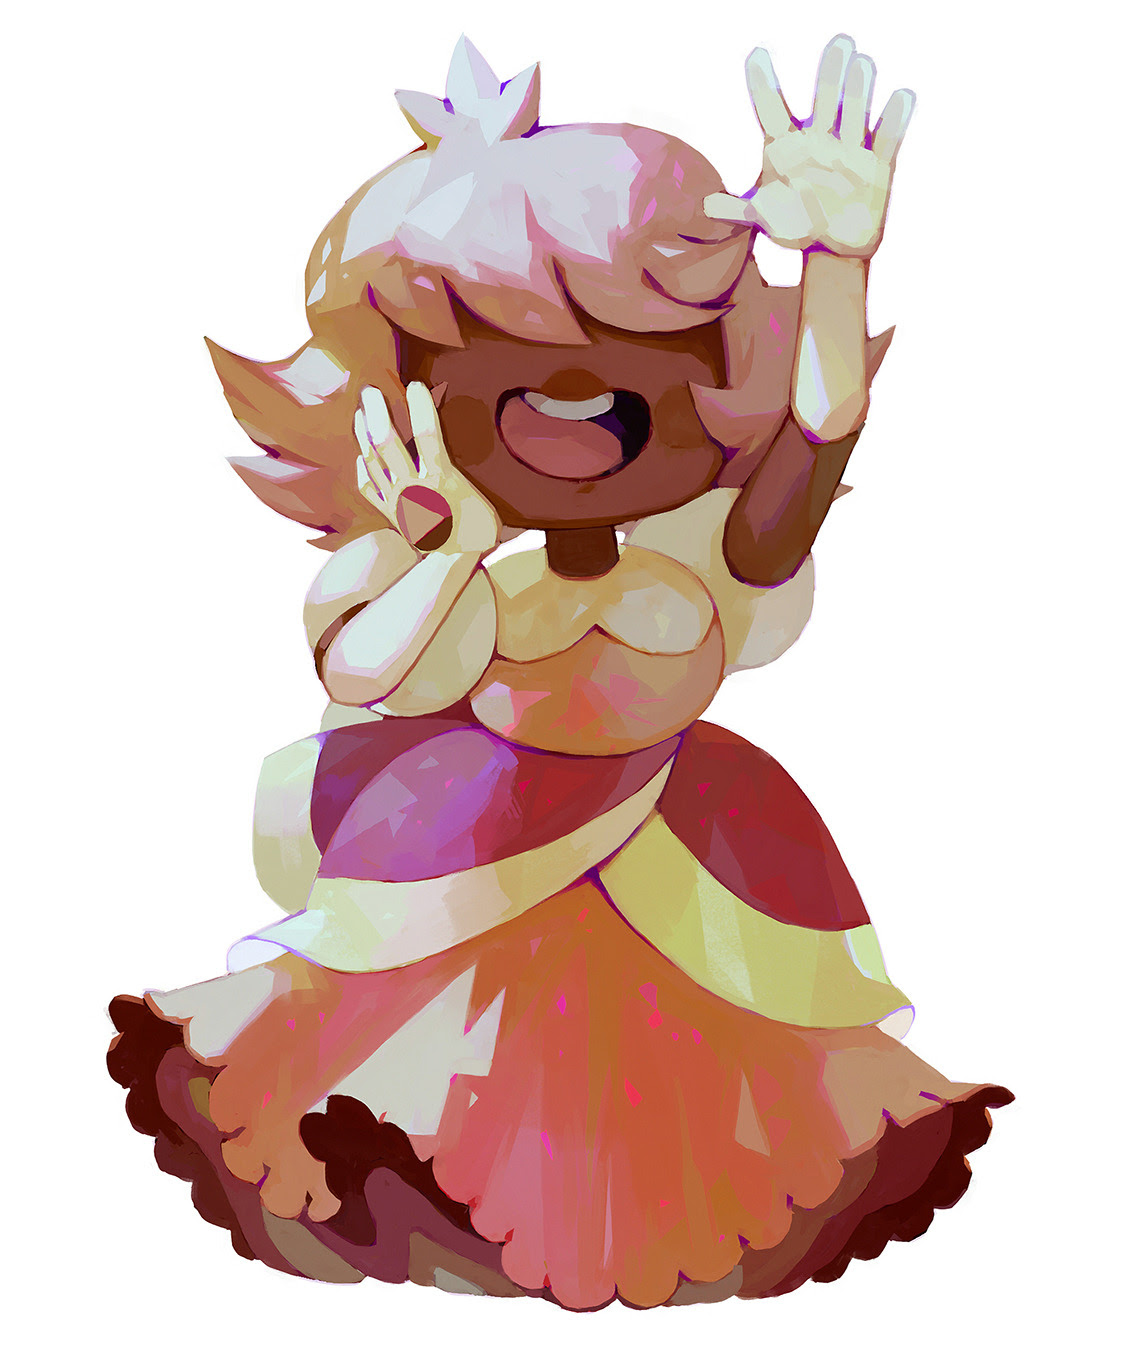 Padparadscha & Sapphire, really enjoyed painting these two also I'm going to post art from now on on twitter: twitter.com/bluekomadori, so you can follow me there!